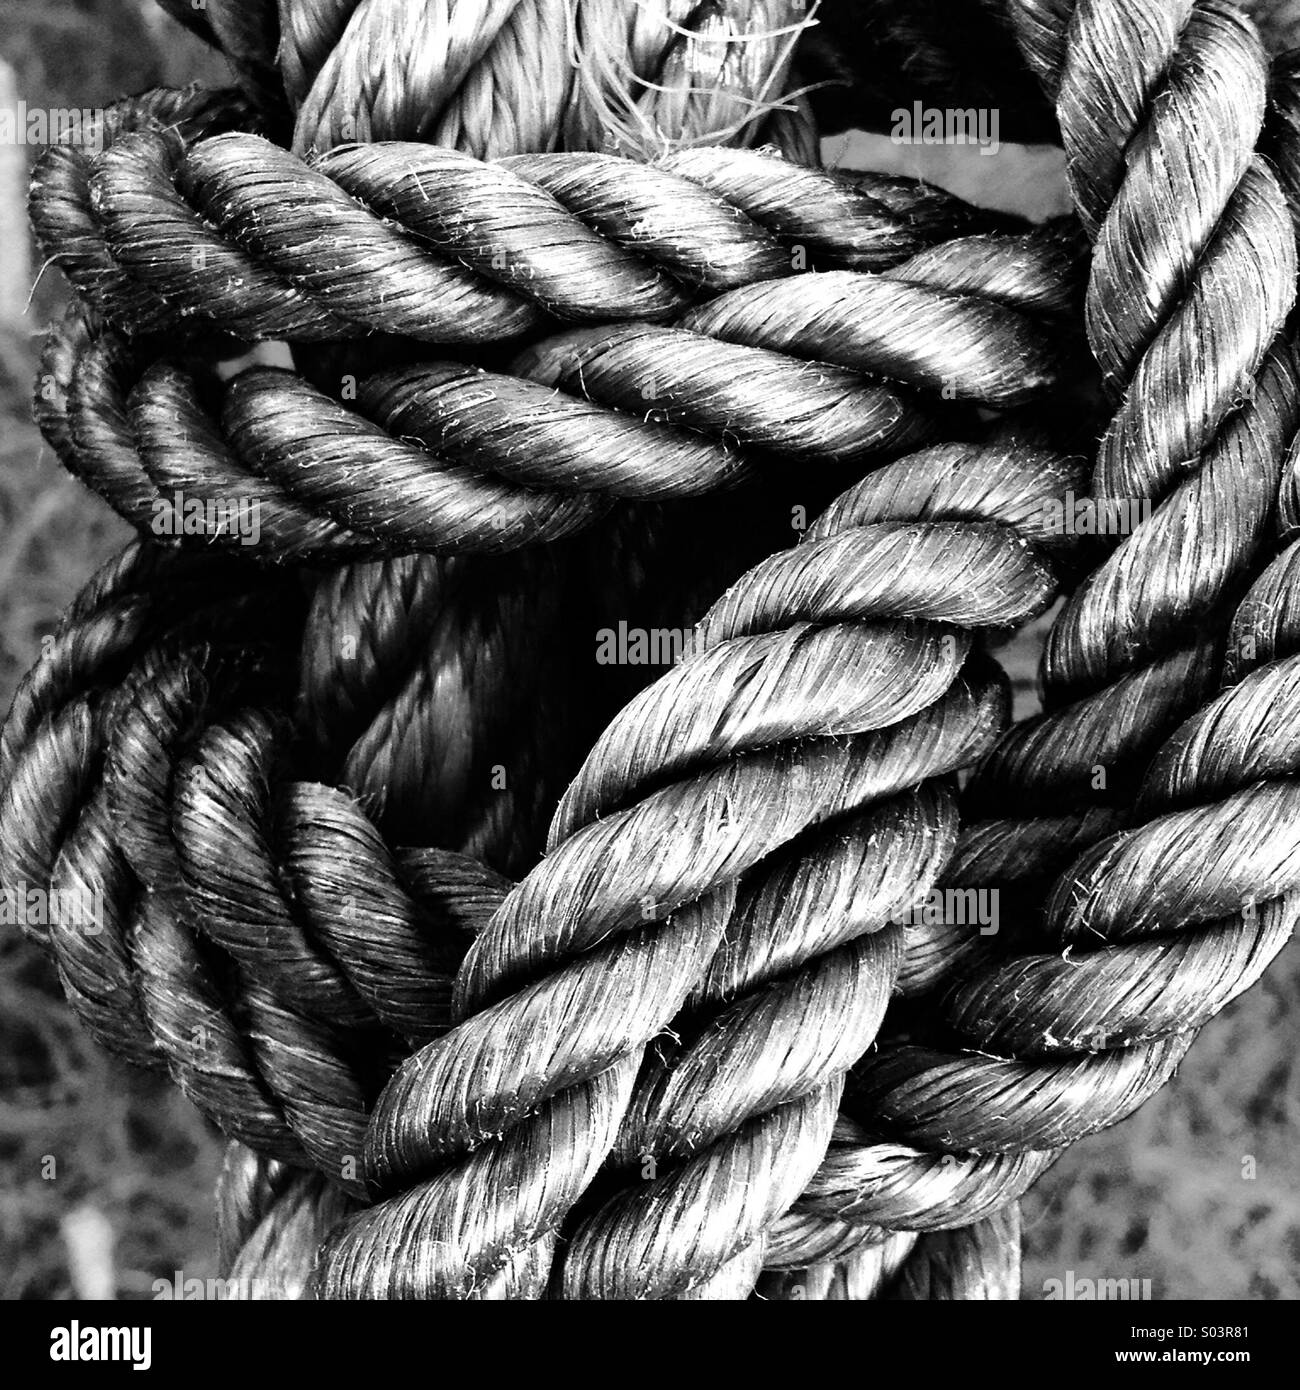 Rope texture strong strength. - Stock Image